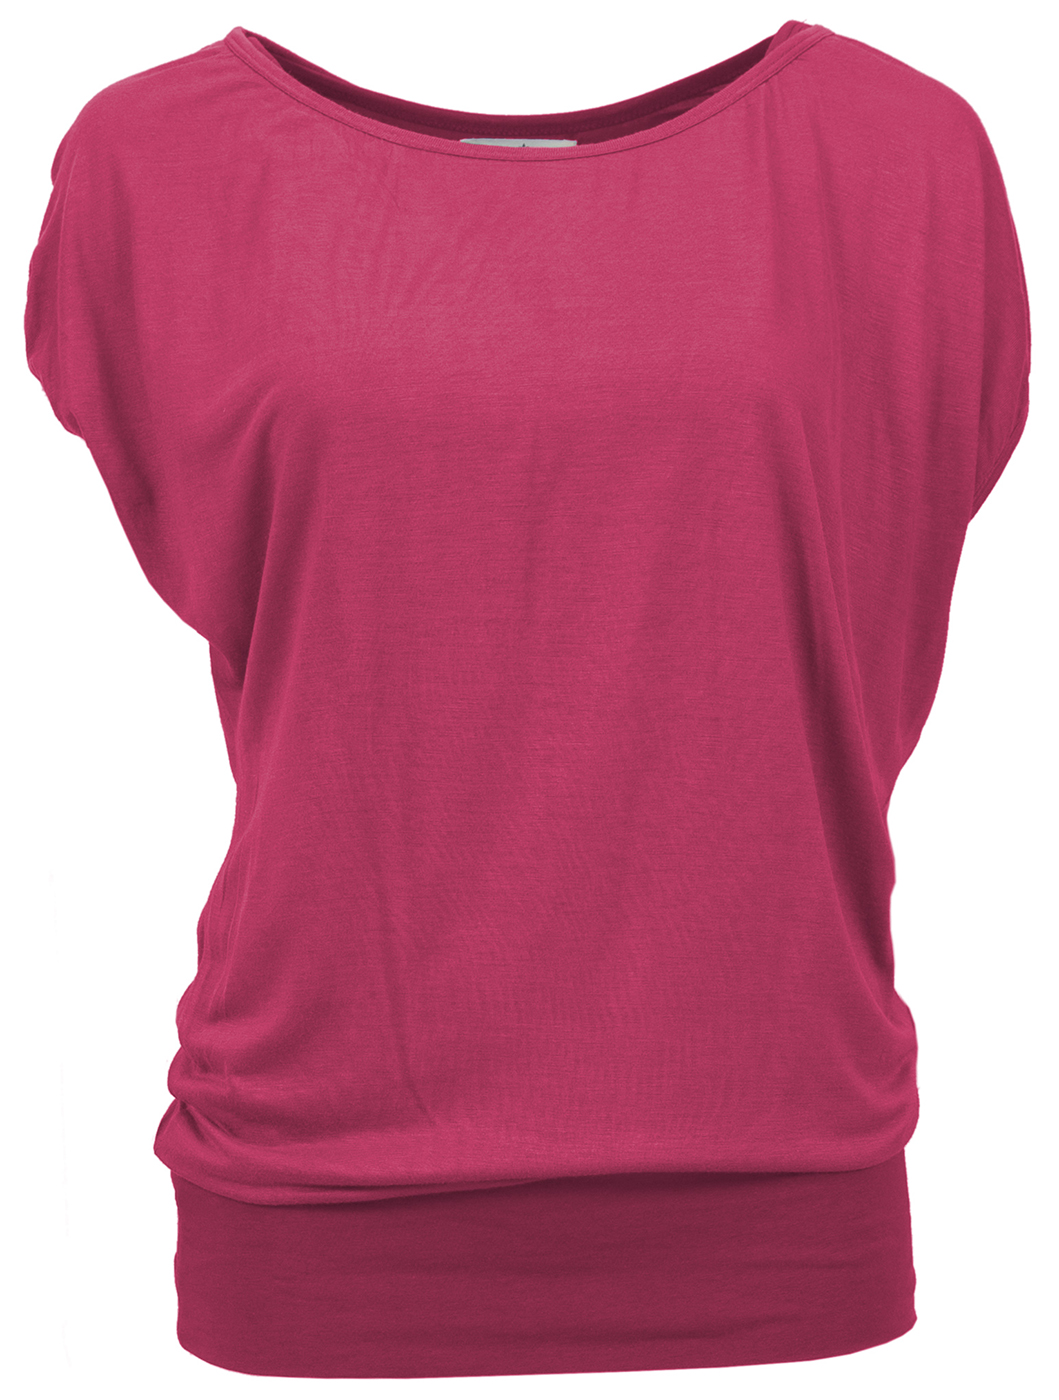 "Shirt ""Lucy"", beet red"